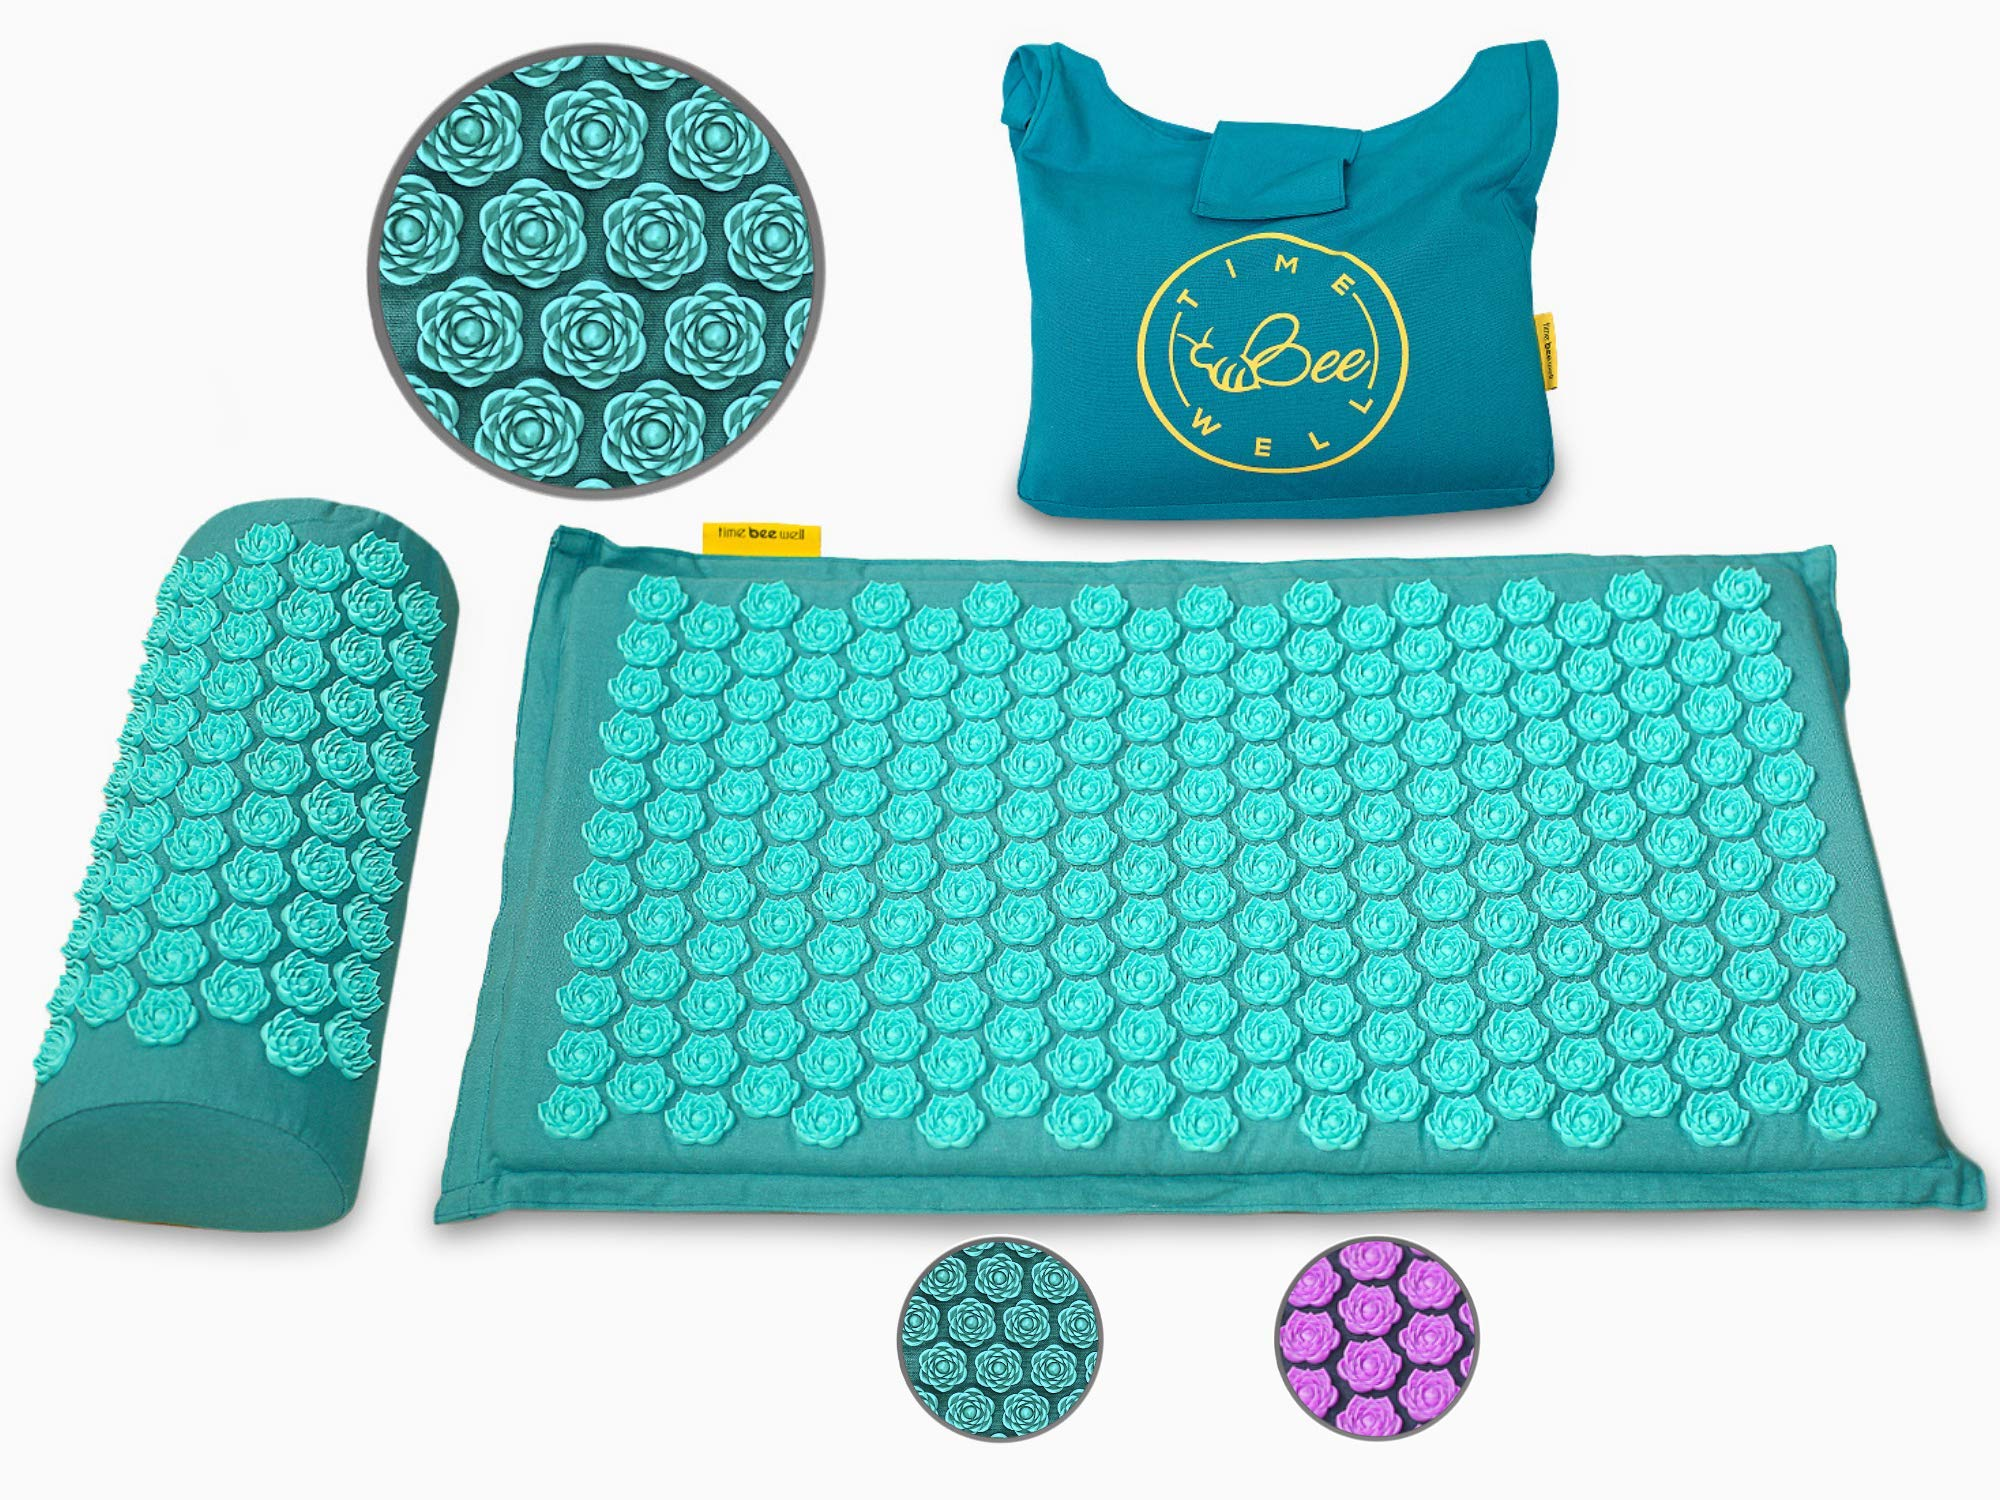 TimeBeeWell Eco-Friendly Back and Neck Pain Relief - Acupressure Mat and Pillow Set - Relieves Stress, Back, Neck, and Sciatic Pain - Comes in a Carry Bag for Storage and Travel by TimeBeeWell